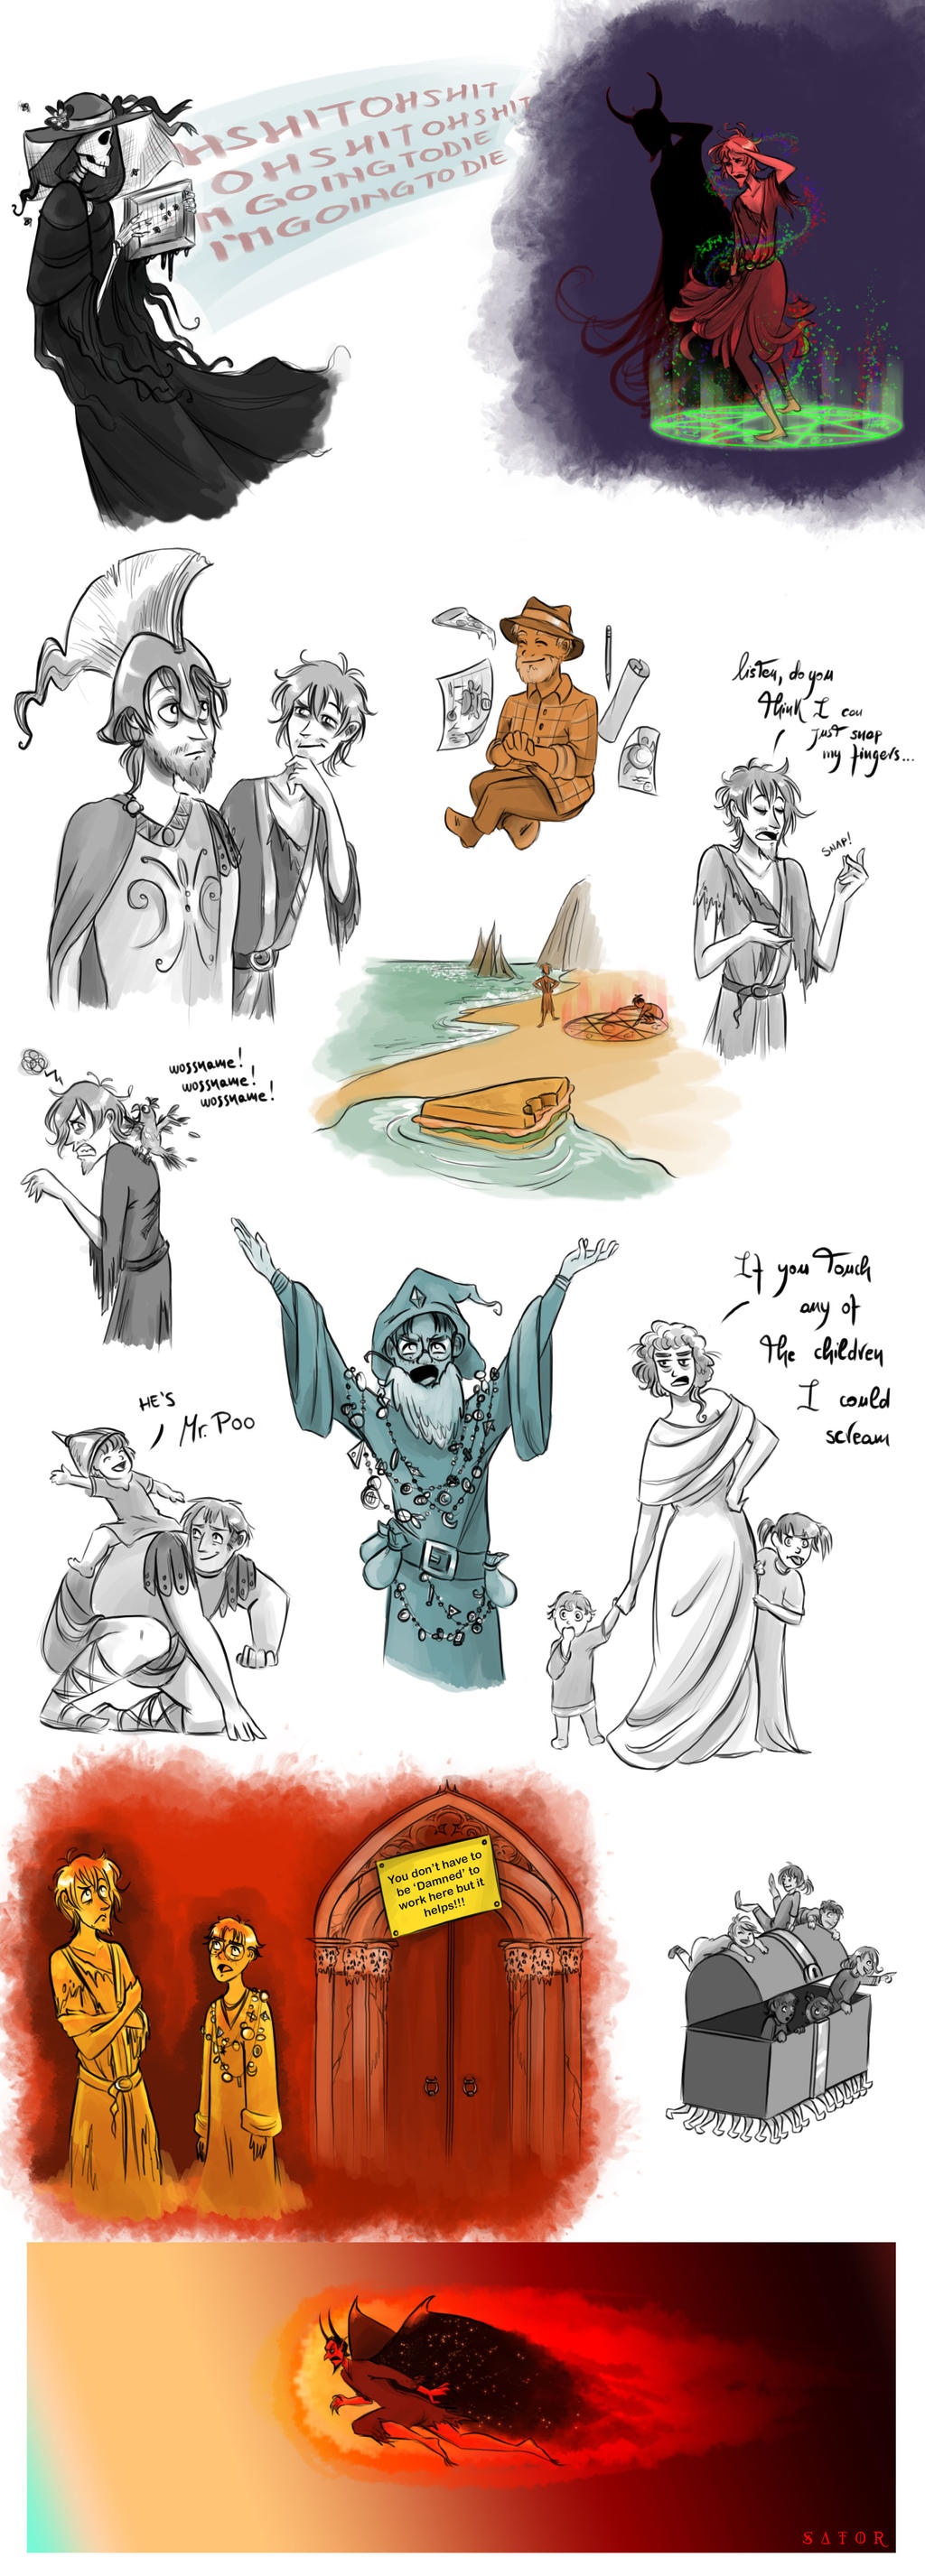 Discworld sketchdump - Faust Eric by StormBay